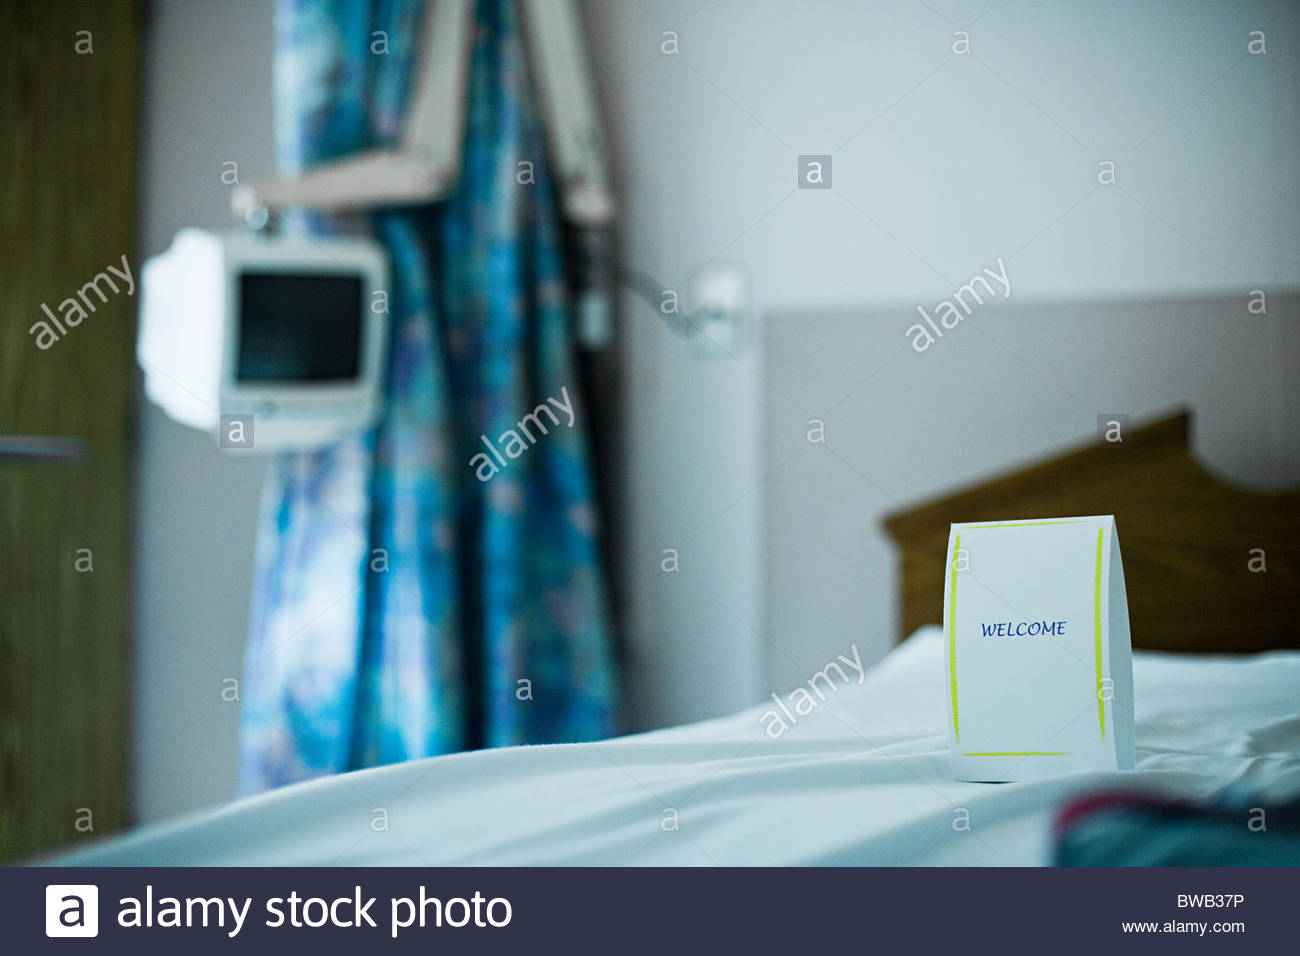 Welcome note on hospital bed - Stock Image